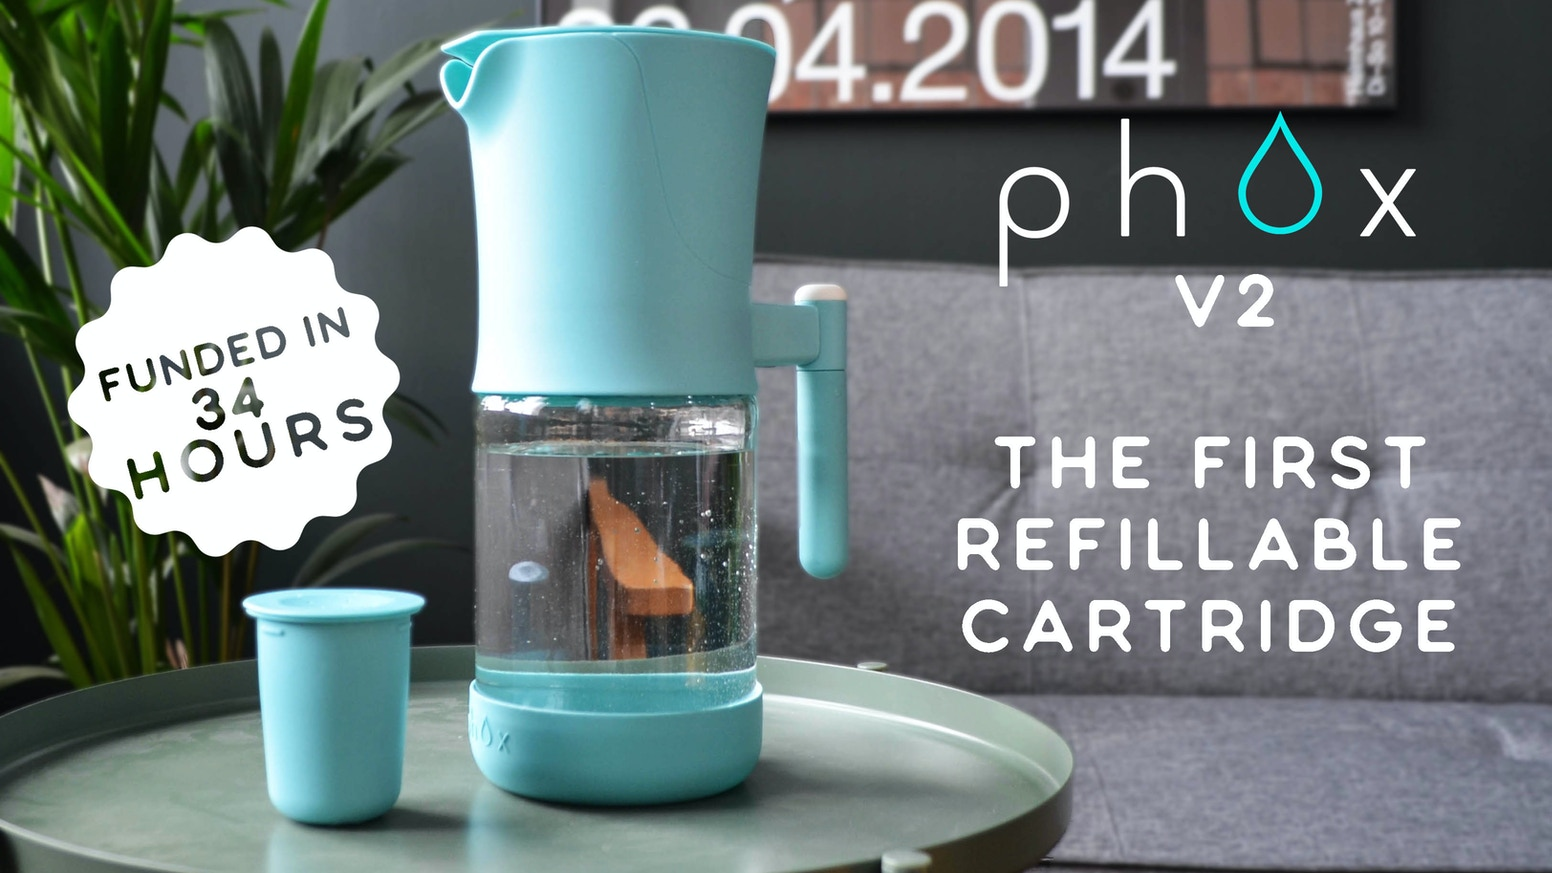 The most environmentally friendly water filter, built to wage war on single use plastic.